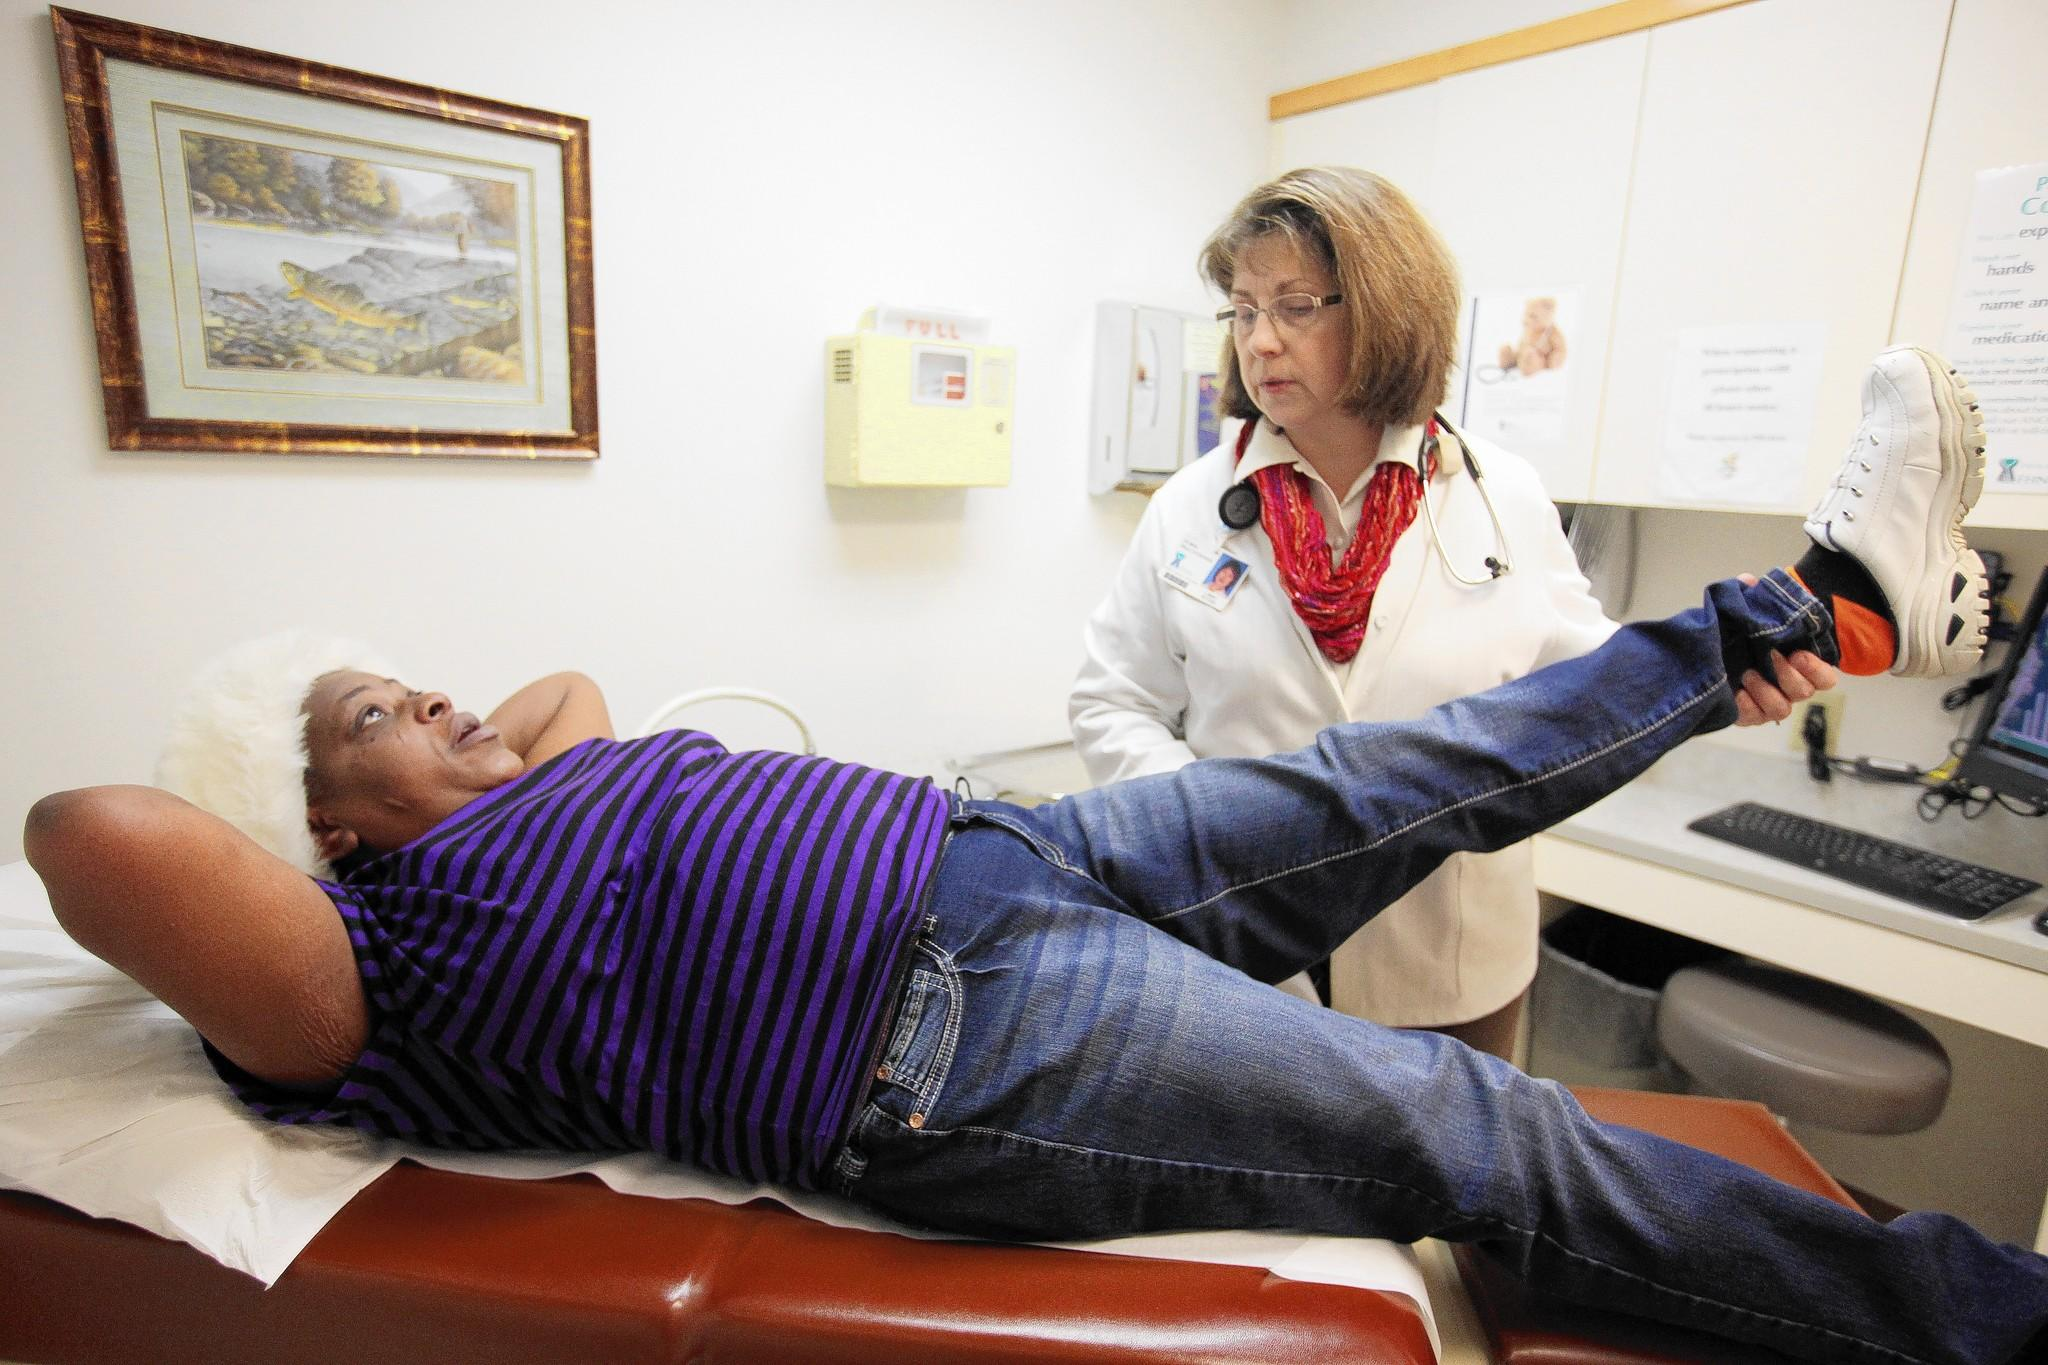 Libby Myers, right, a nurse practitioner at FHN Community Healthcare Center in Freeport, Ill., examines patient Zennetta Stuggis, who was being seen for chronic back pain. Stuggis, 49, recently enrolled in Obamacare.